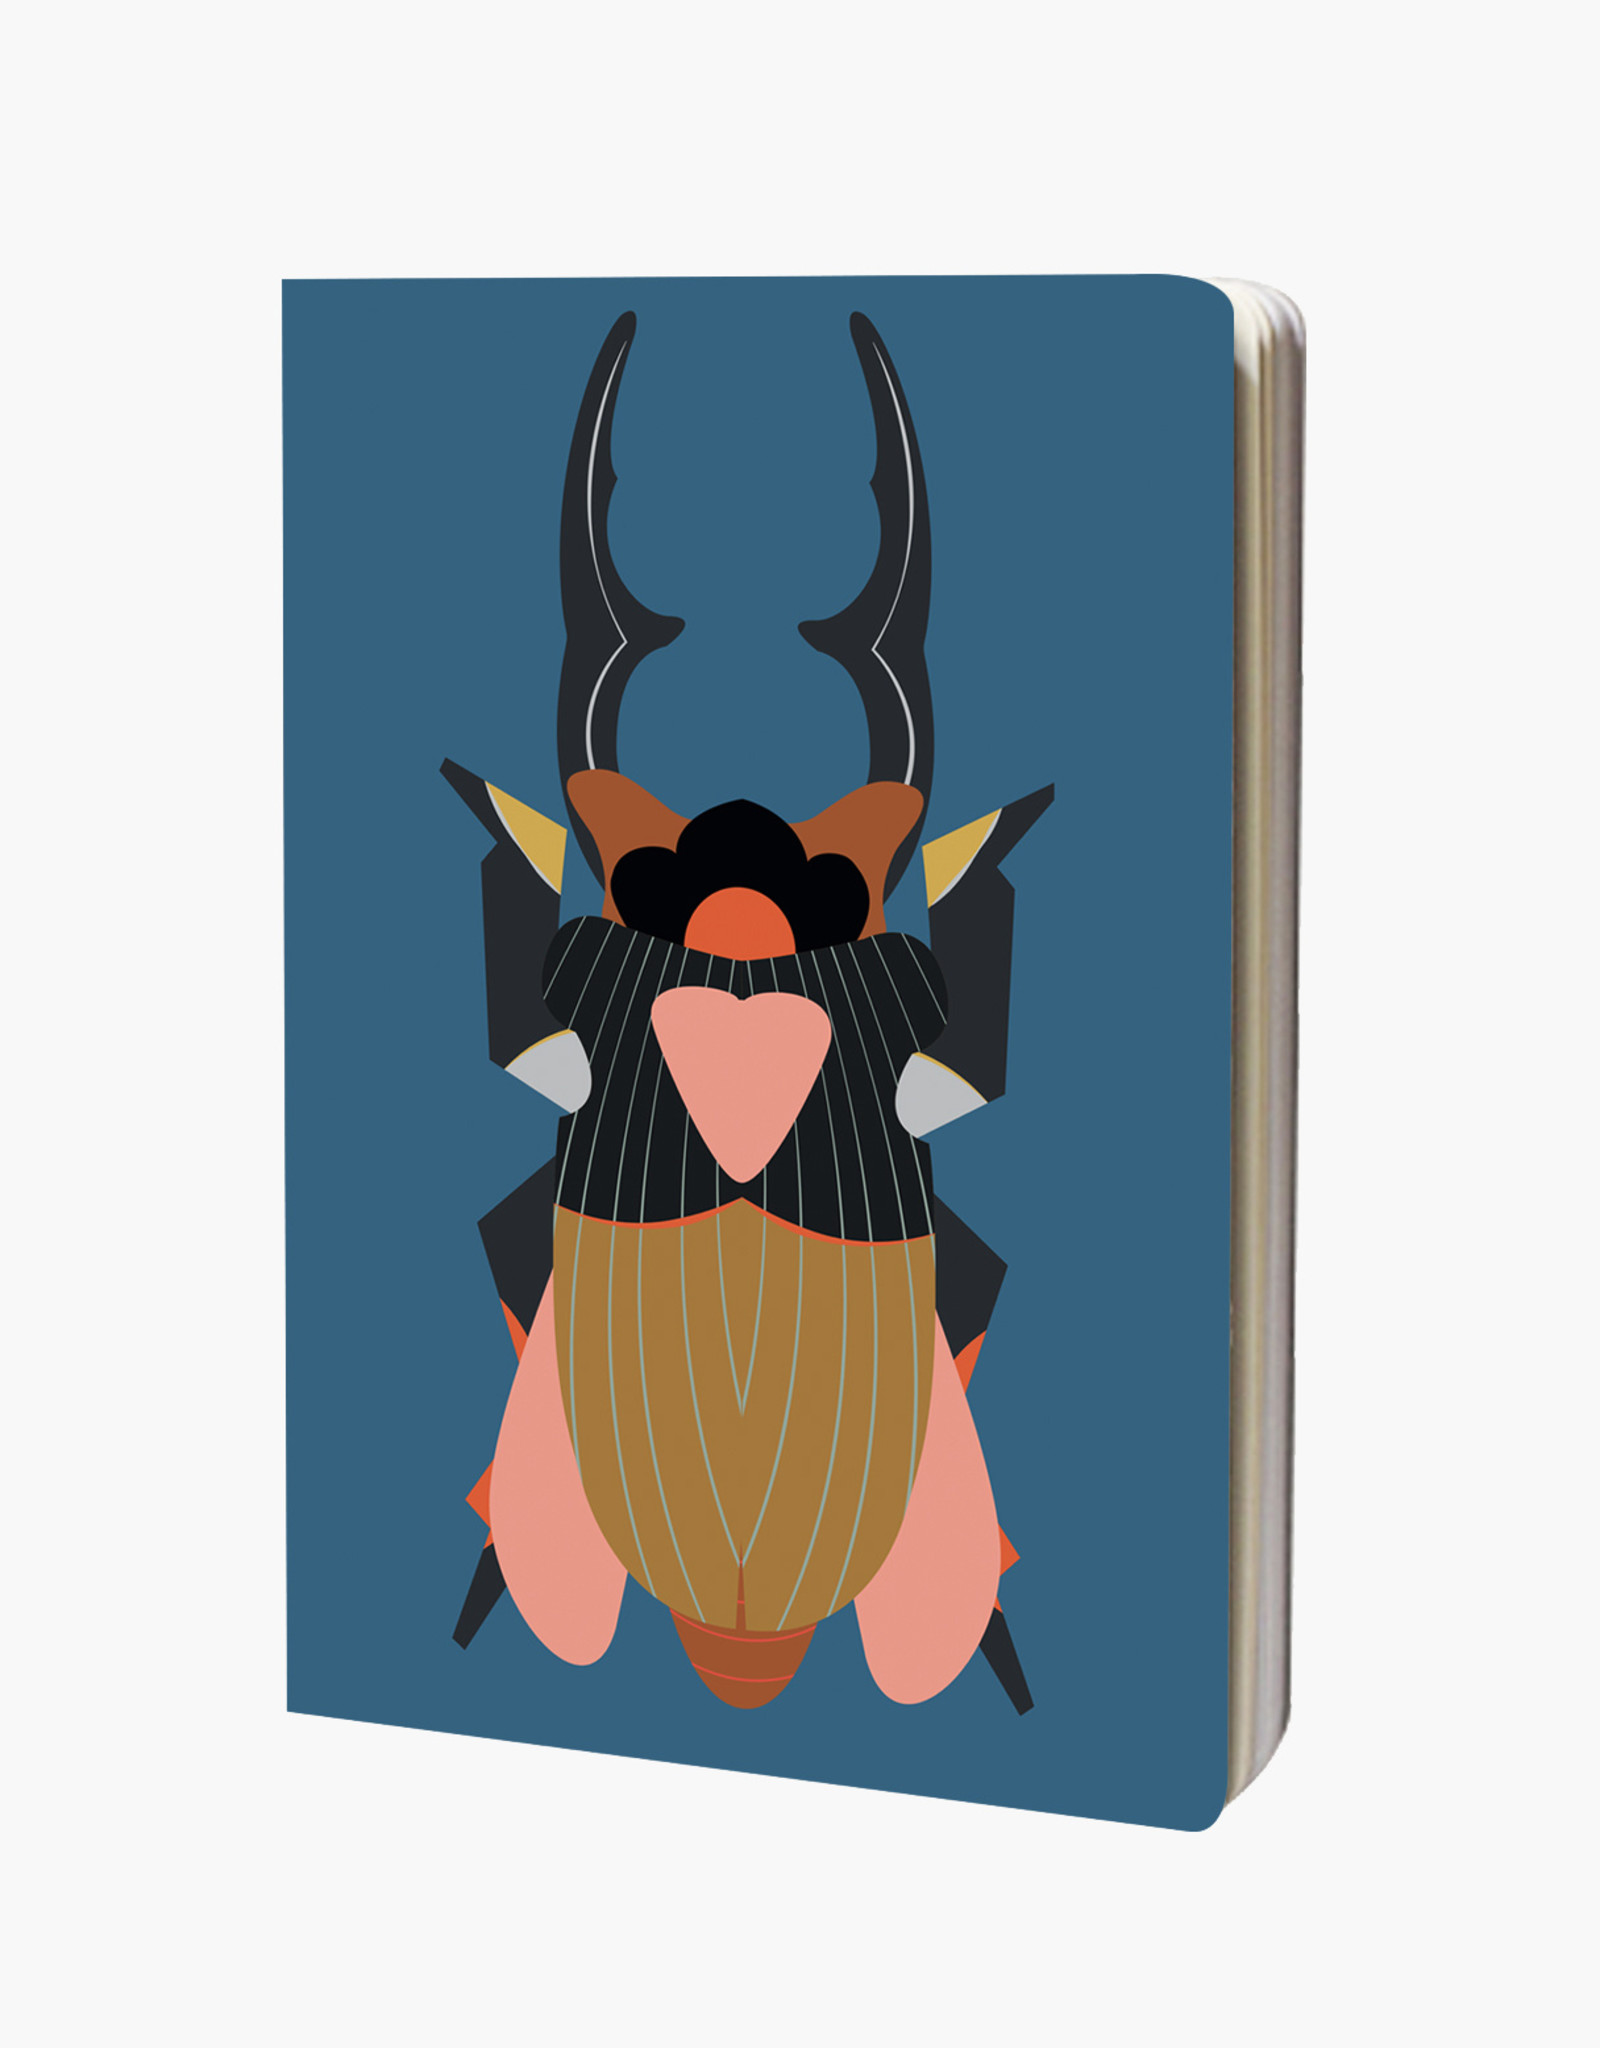 Studioroof A4 Sketch Book Giant Stag Beetle